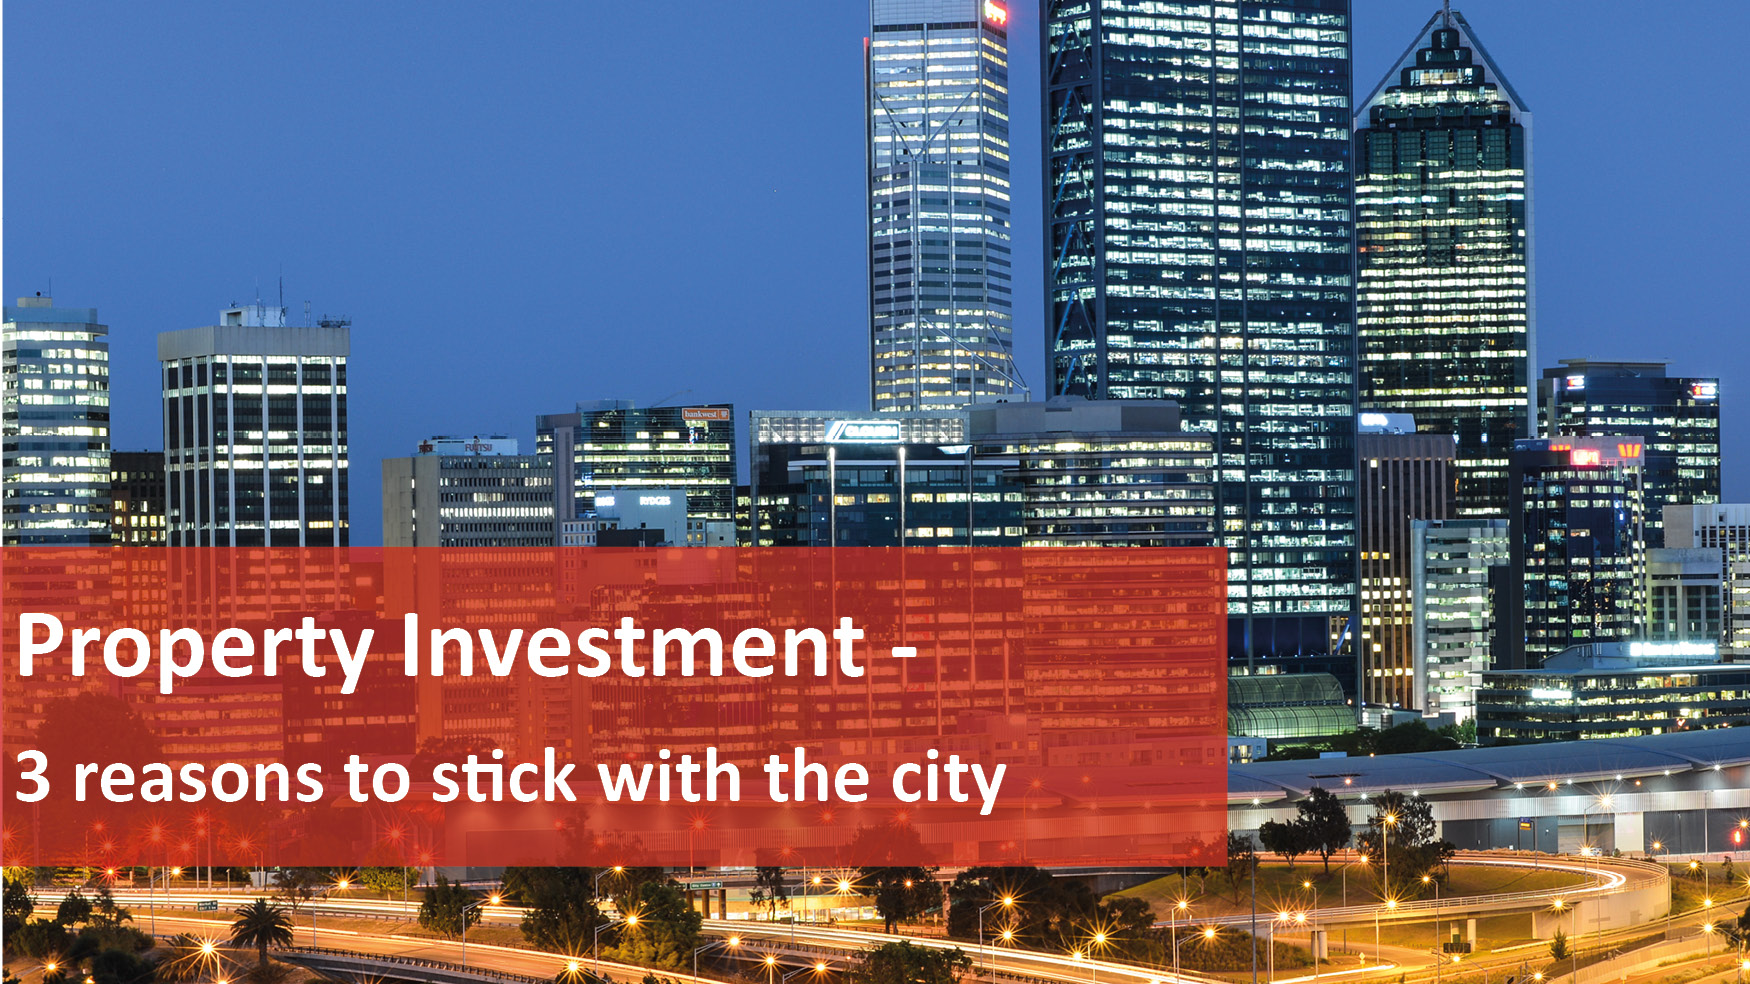 We Love Rentals Property Investment 3 Reasons To Stick With The City